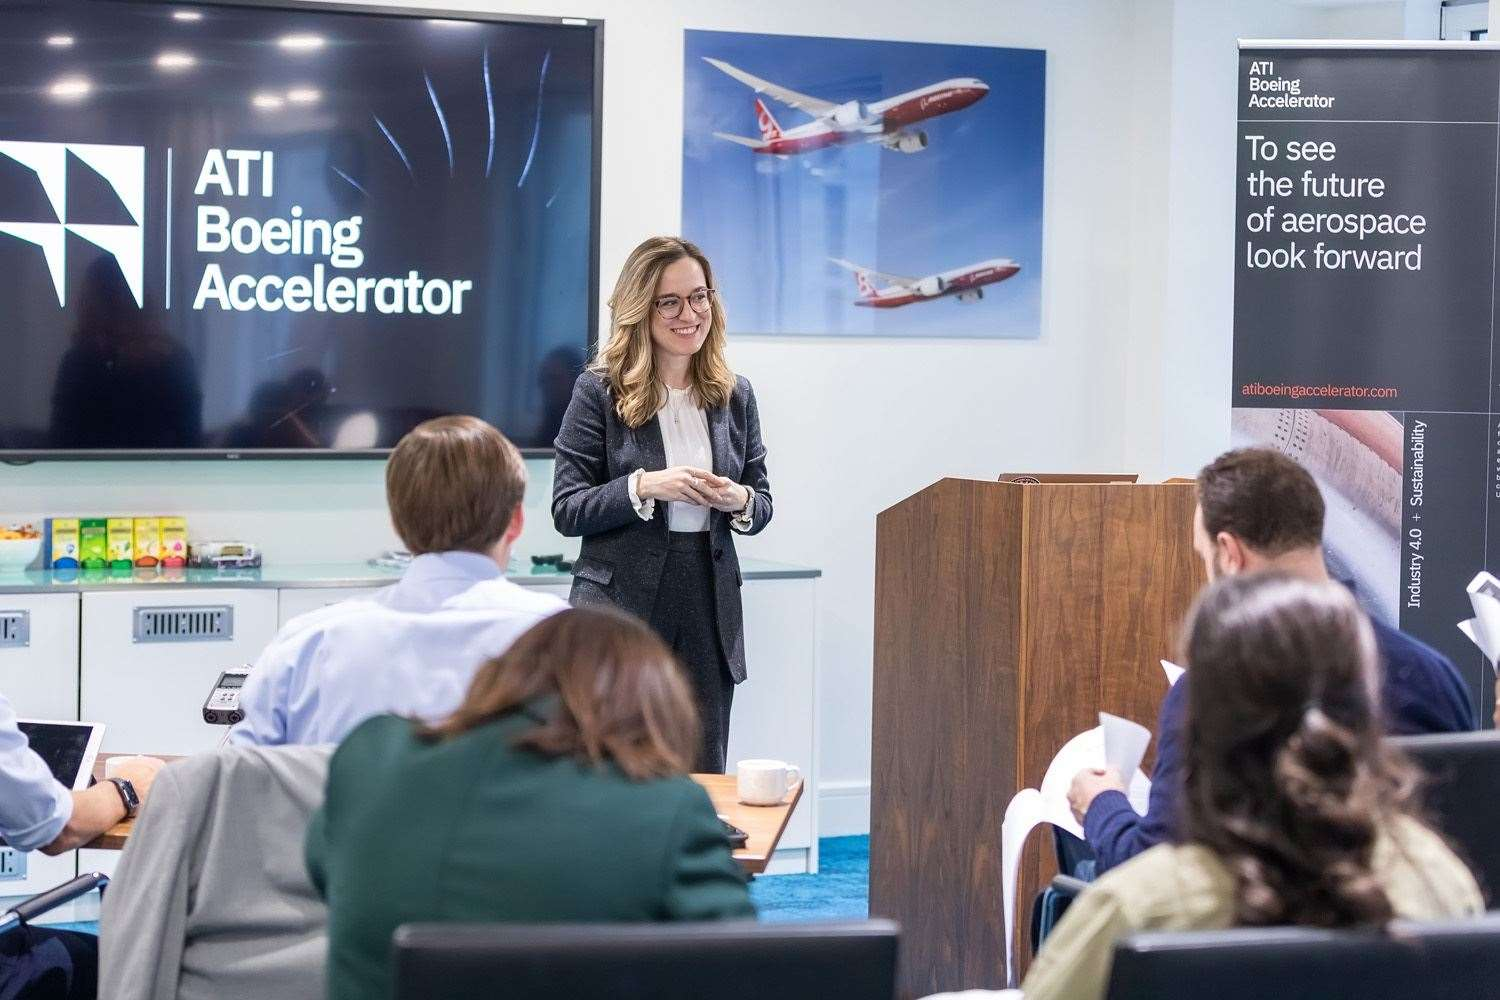 The ATI Boeing Accelerator is an opportunity to look at new materials for aerospace. Picture: Laura De Meo